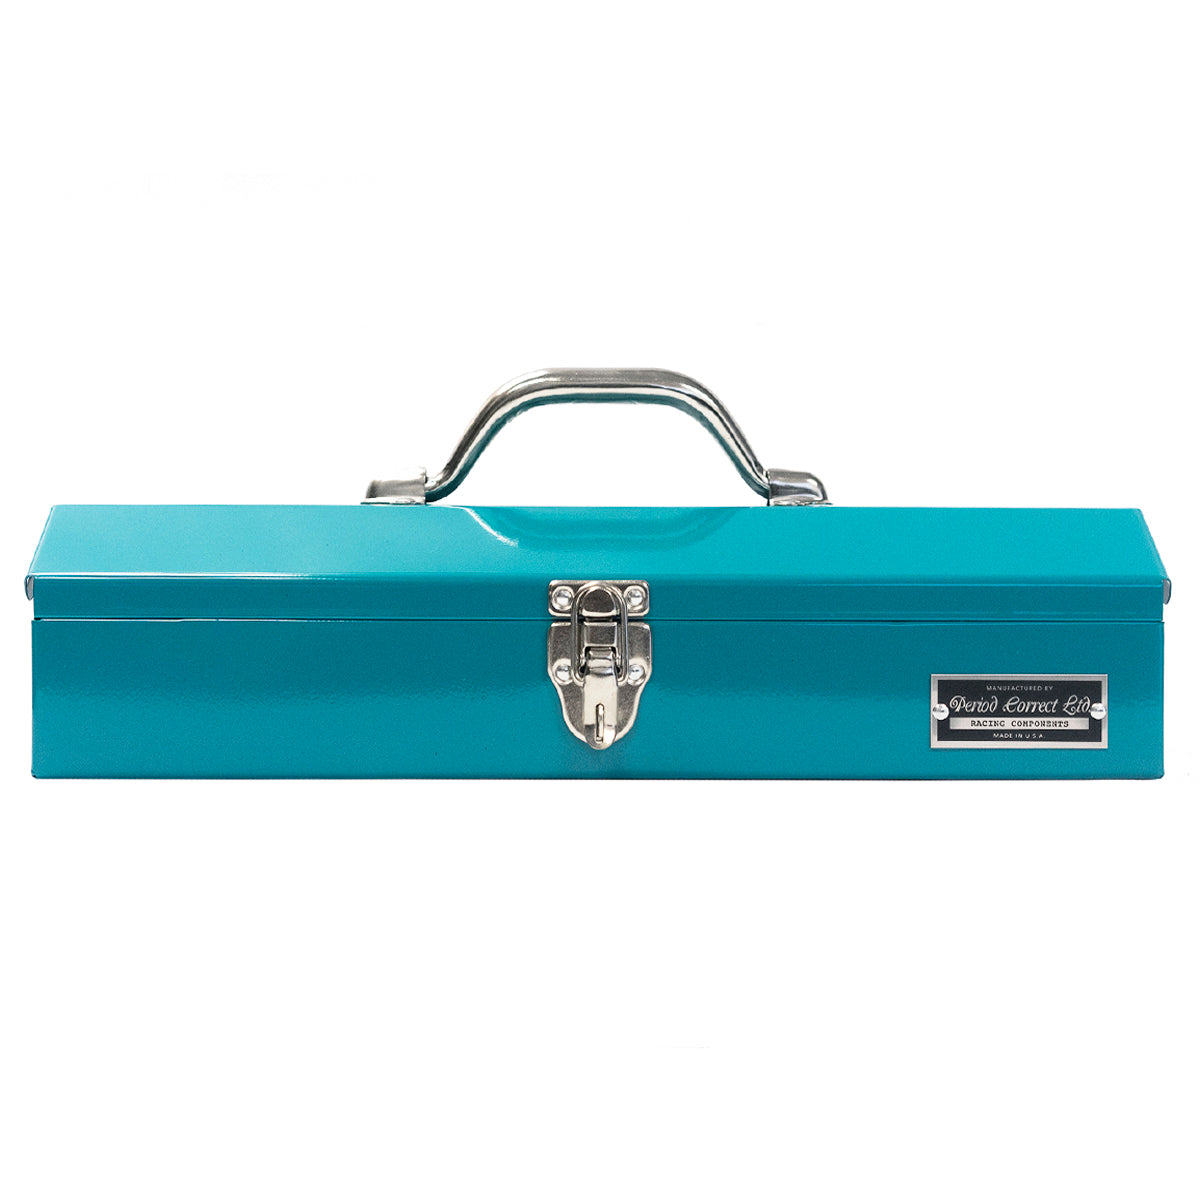 ENGINEERING TOOL BOX MIAMI BLUE